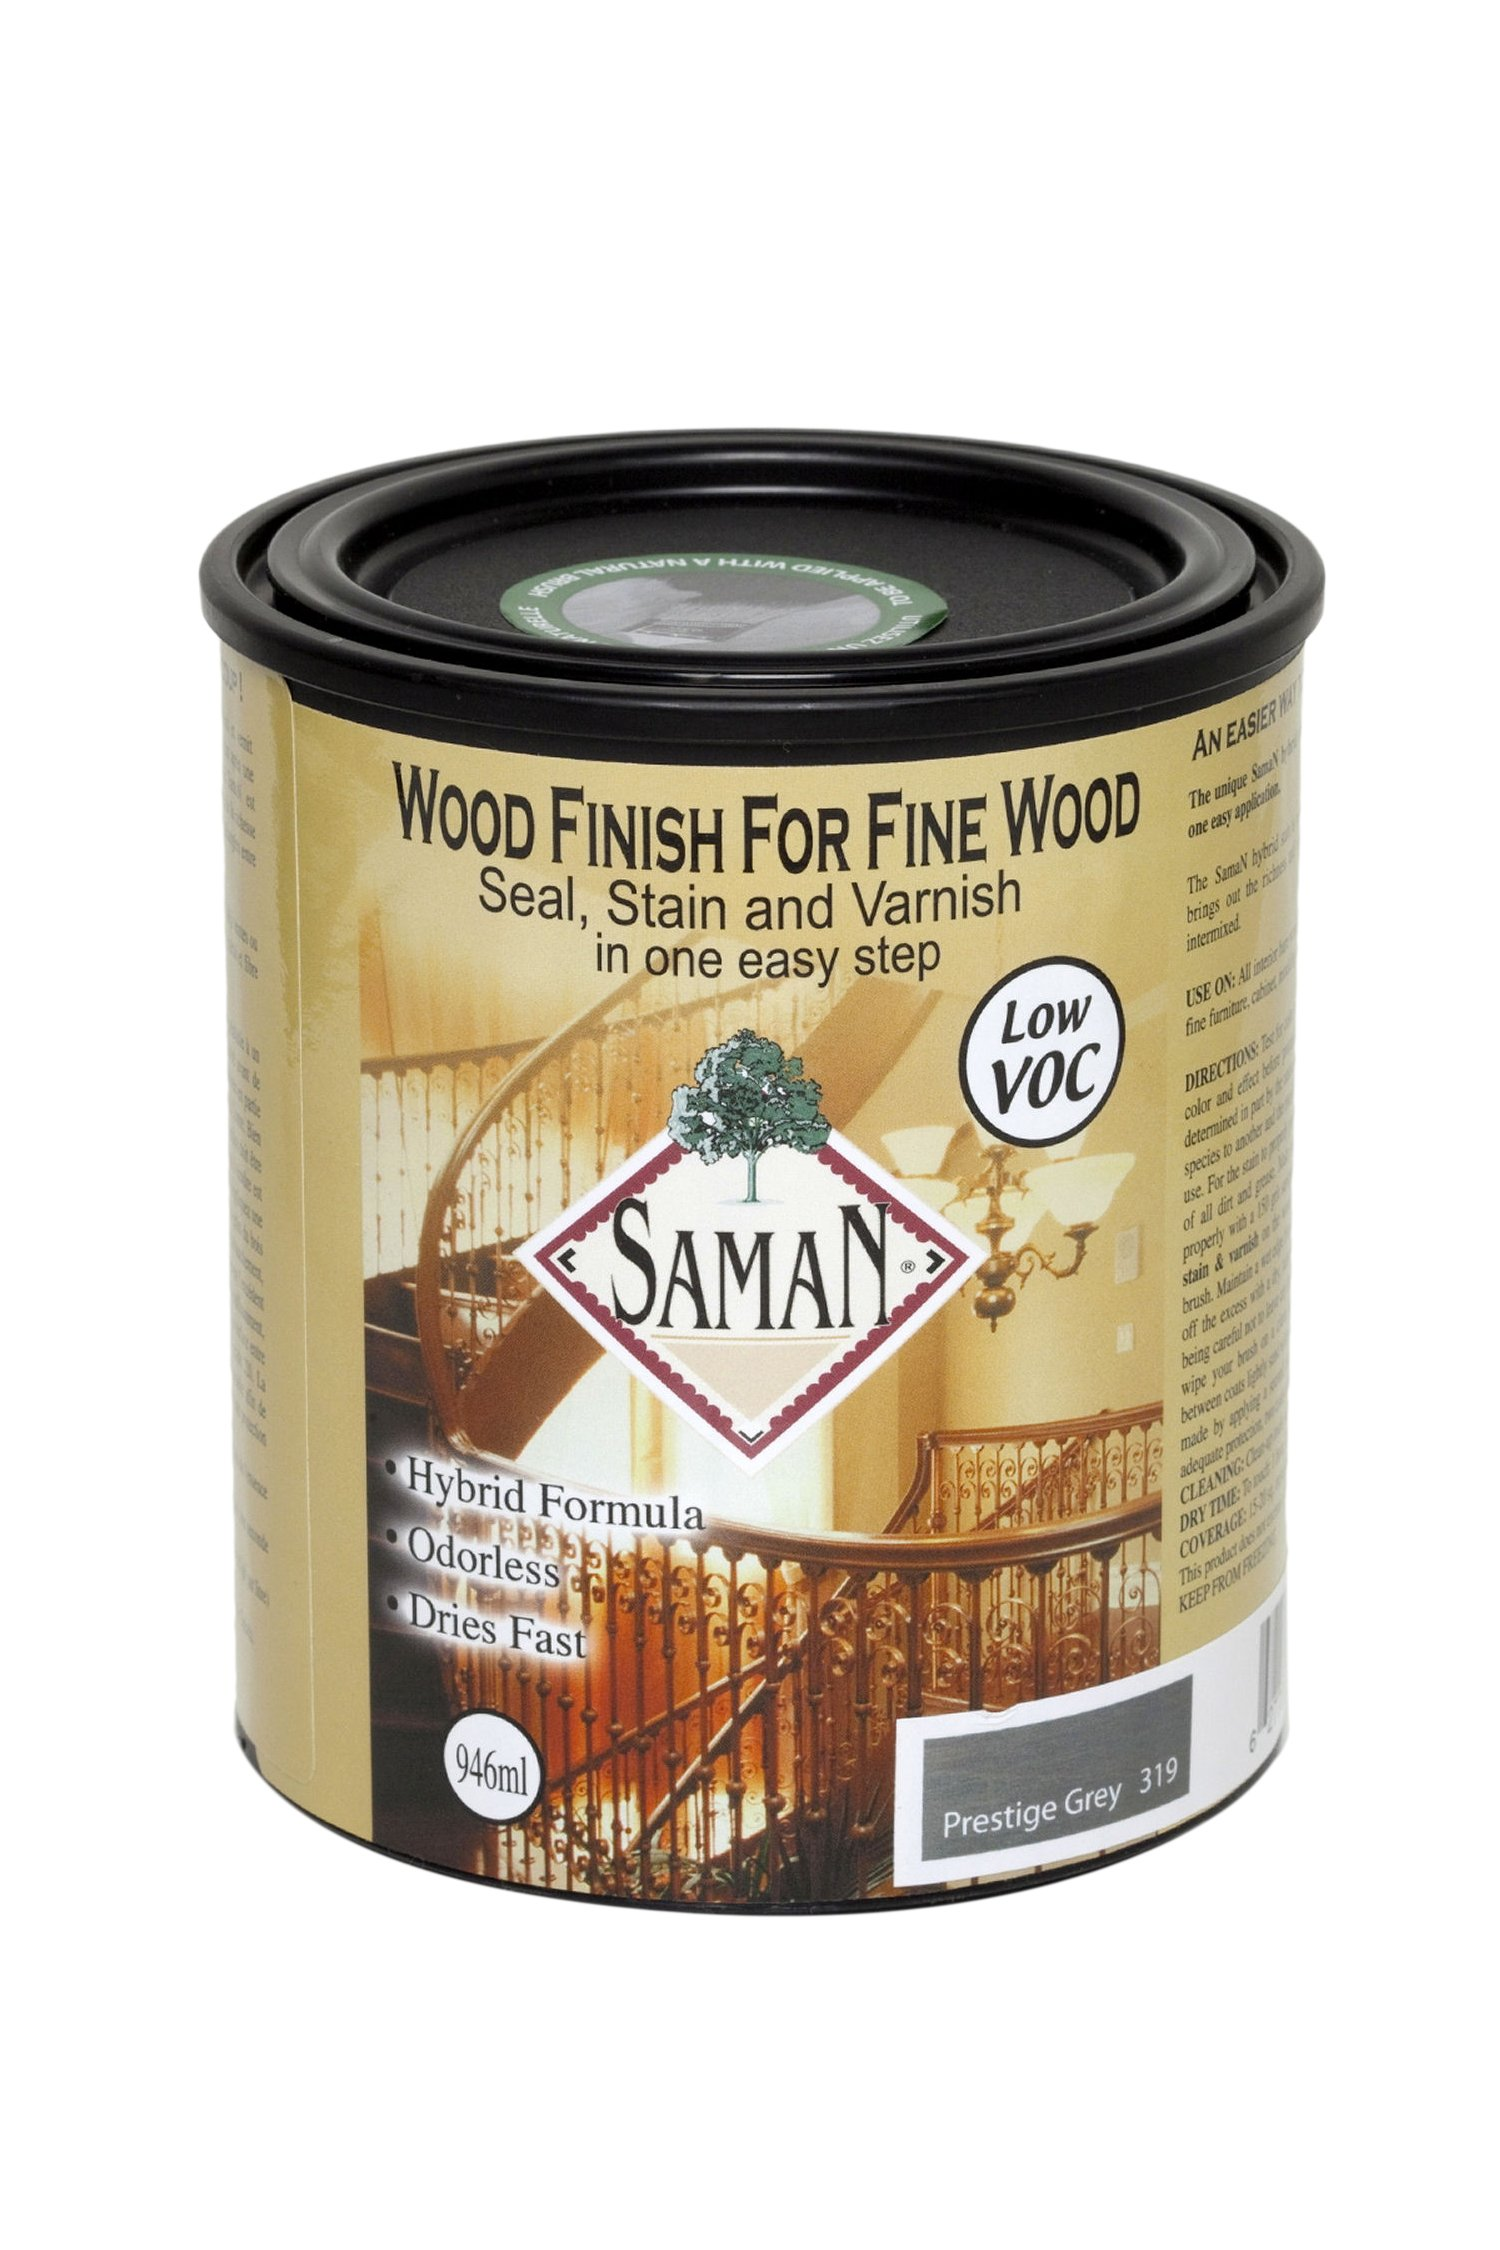 Saman SAM-319-1L Hybrid Interior Stain for Fine Wood for Seal, Stain and Varnish, 1 Liter, Prestige Grey